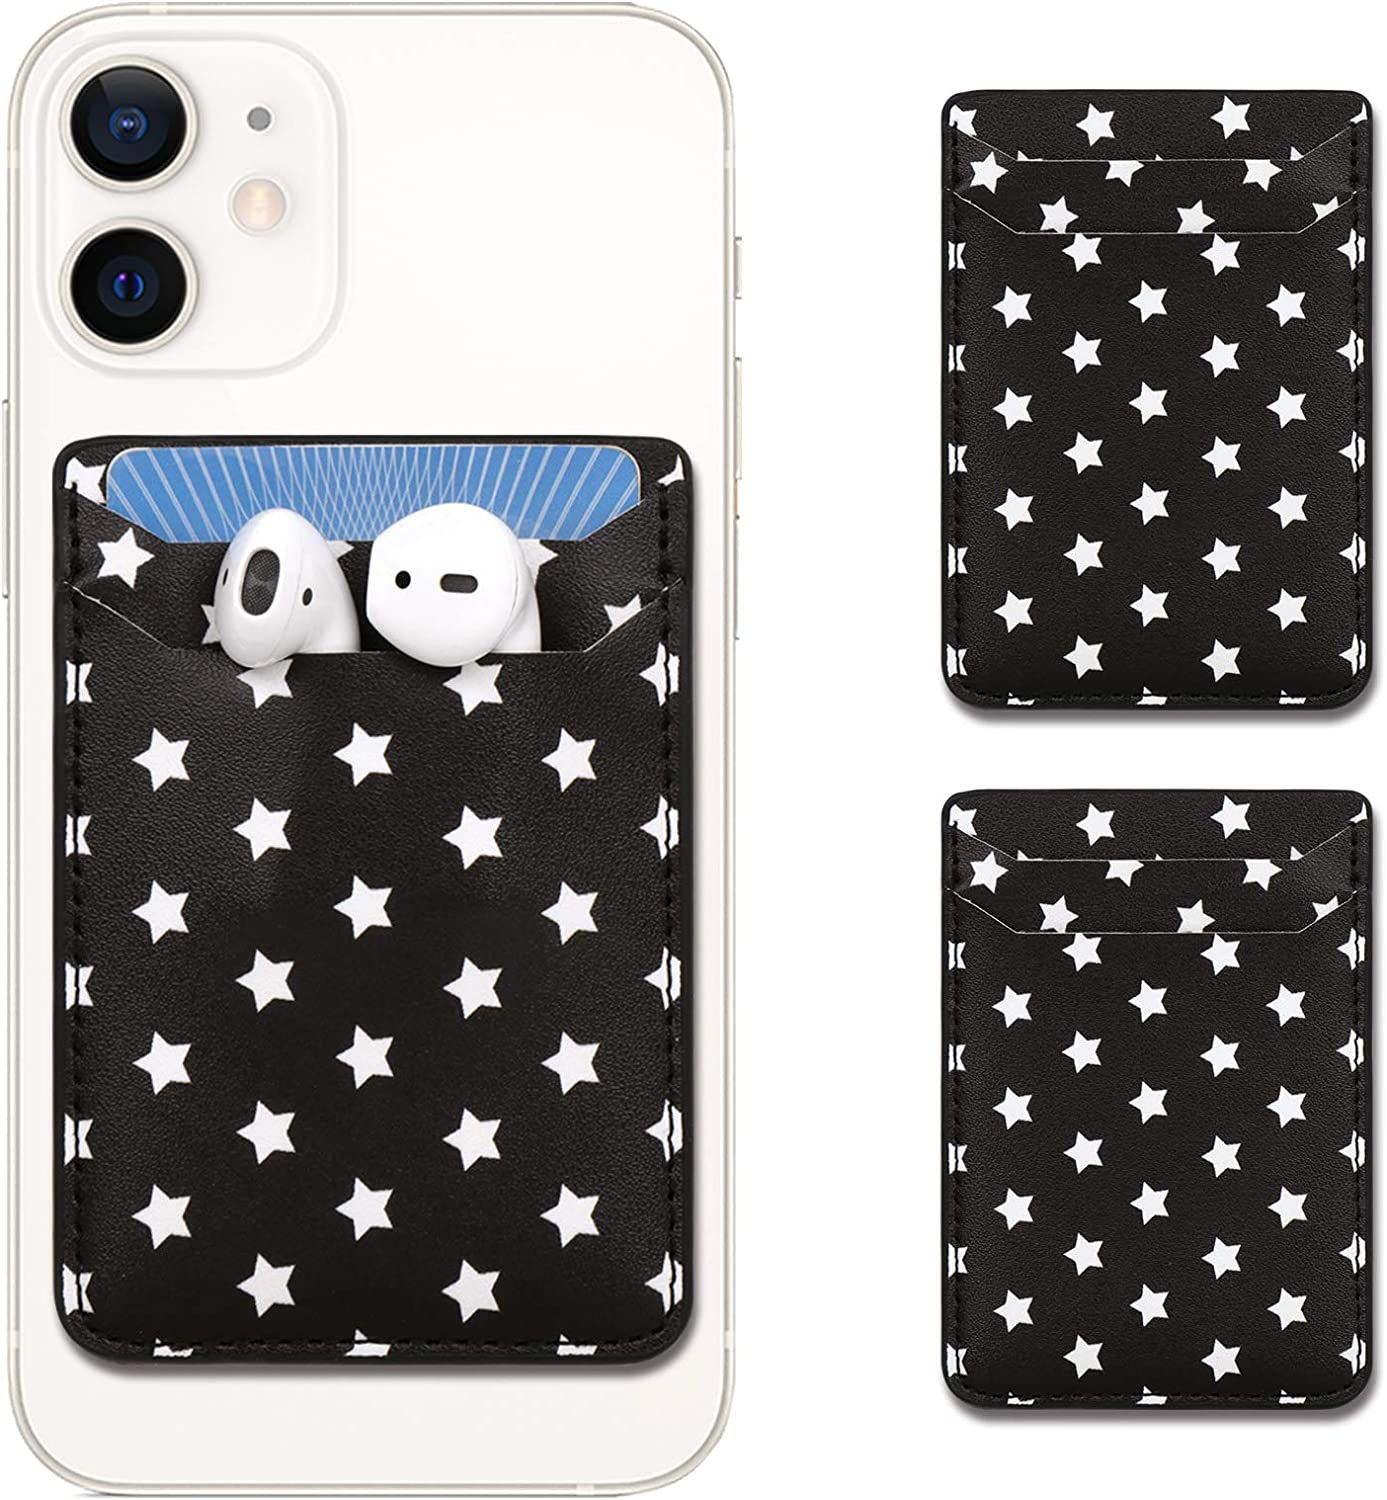 2pcs Star Adhesive Phone Wallet, Credit Card Holder for Back of Phone, Cell Phone Wallet Stick On, Card Holder for Phone Case, Phone Pocket, Compatible with Android Phone Case